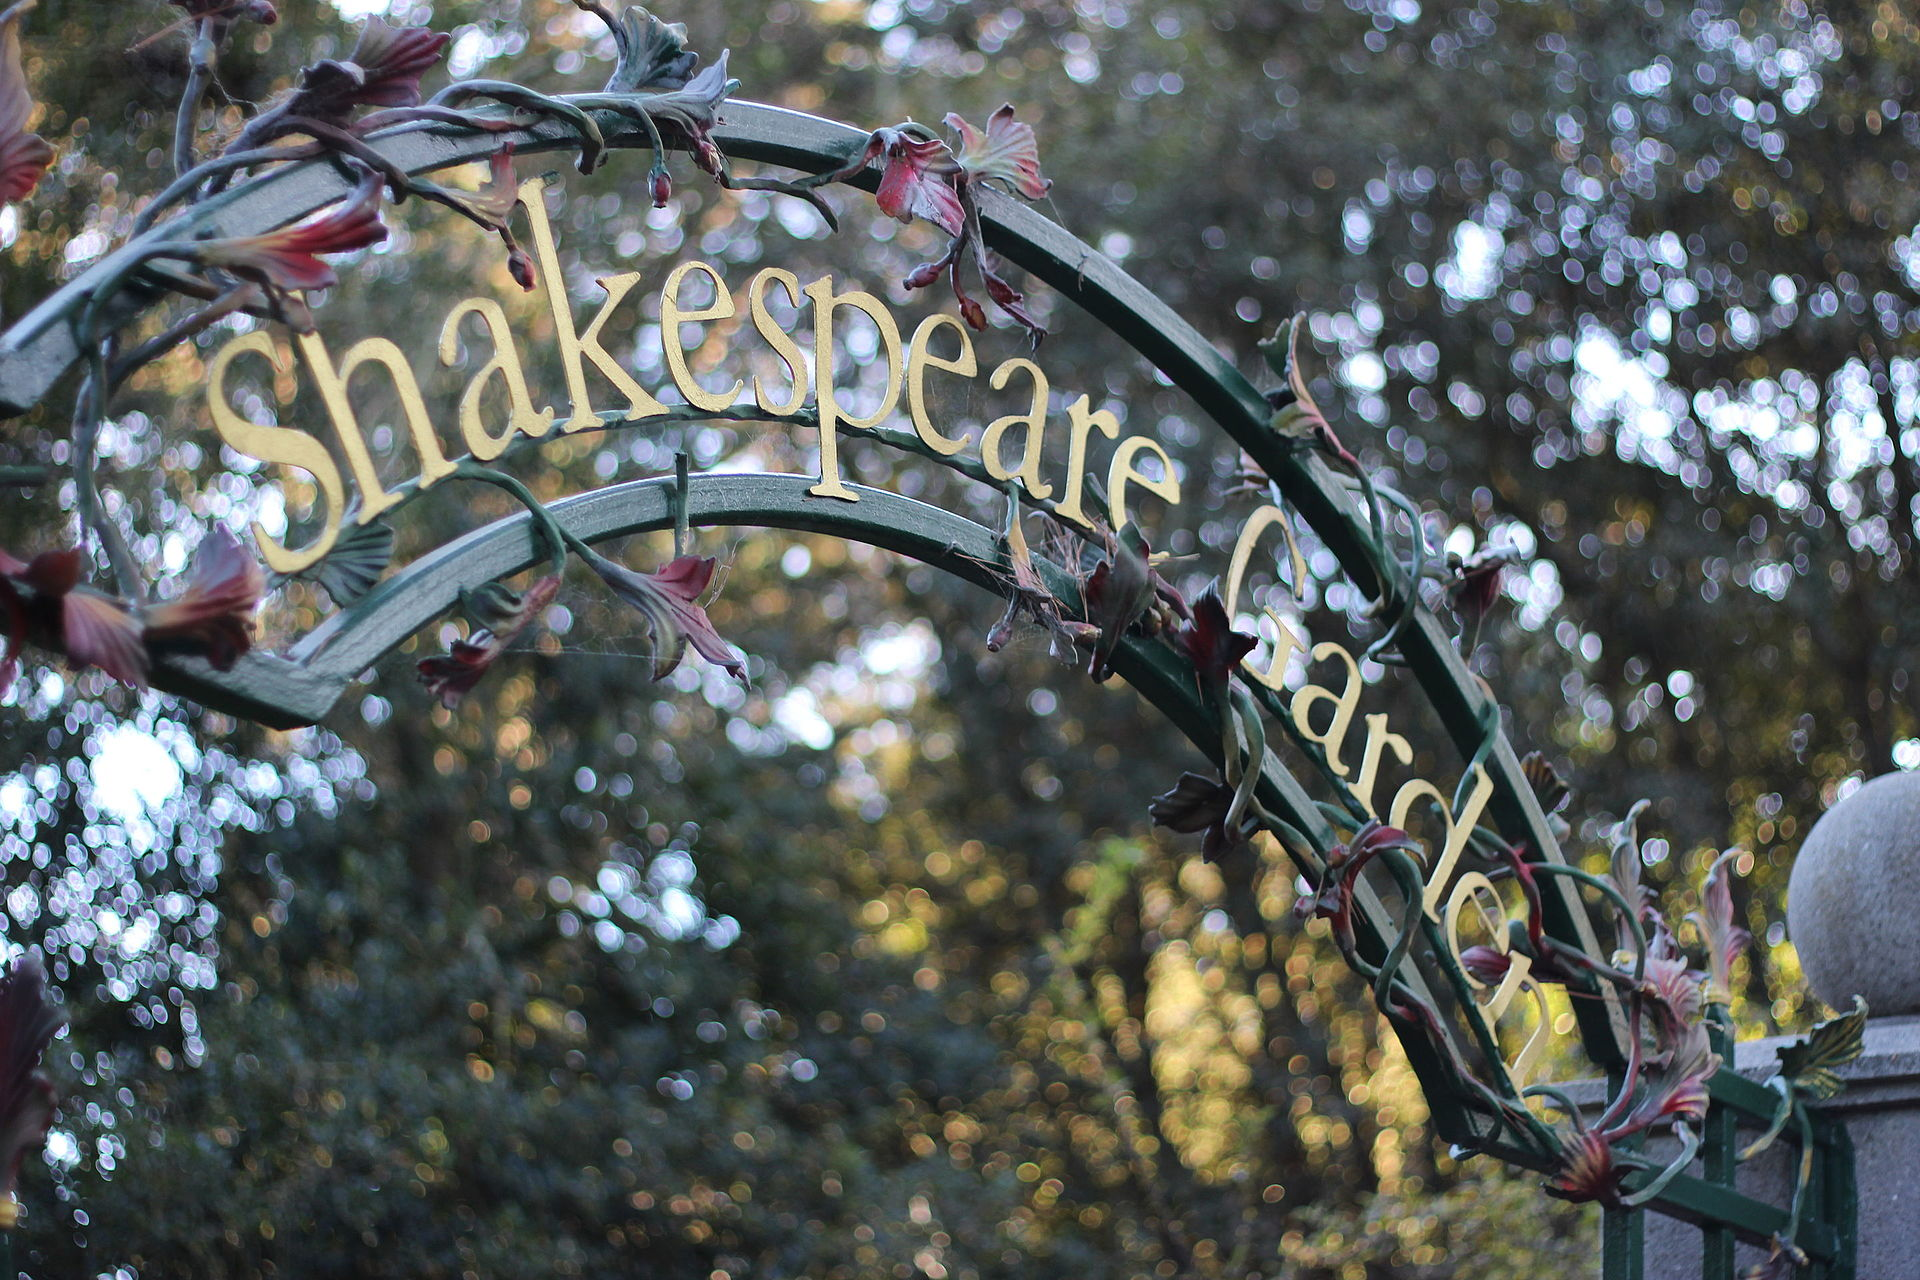 Signage about entry gate to the Shakespeare Garden, Golden Gate Park